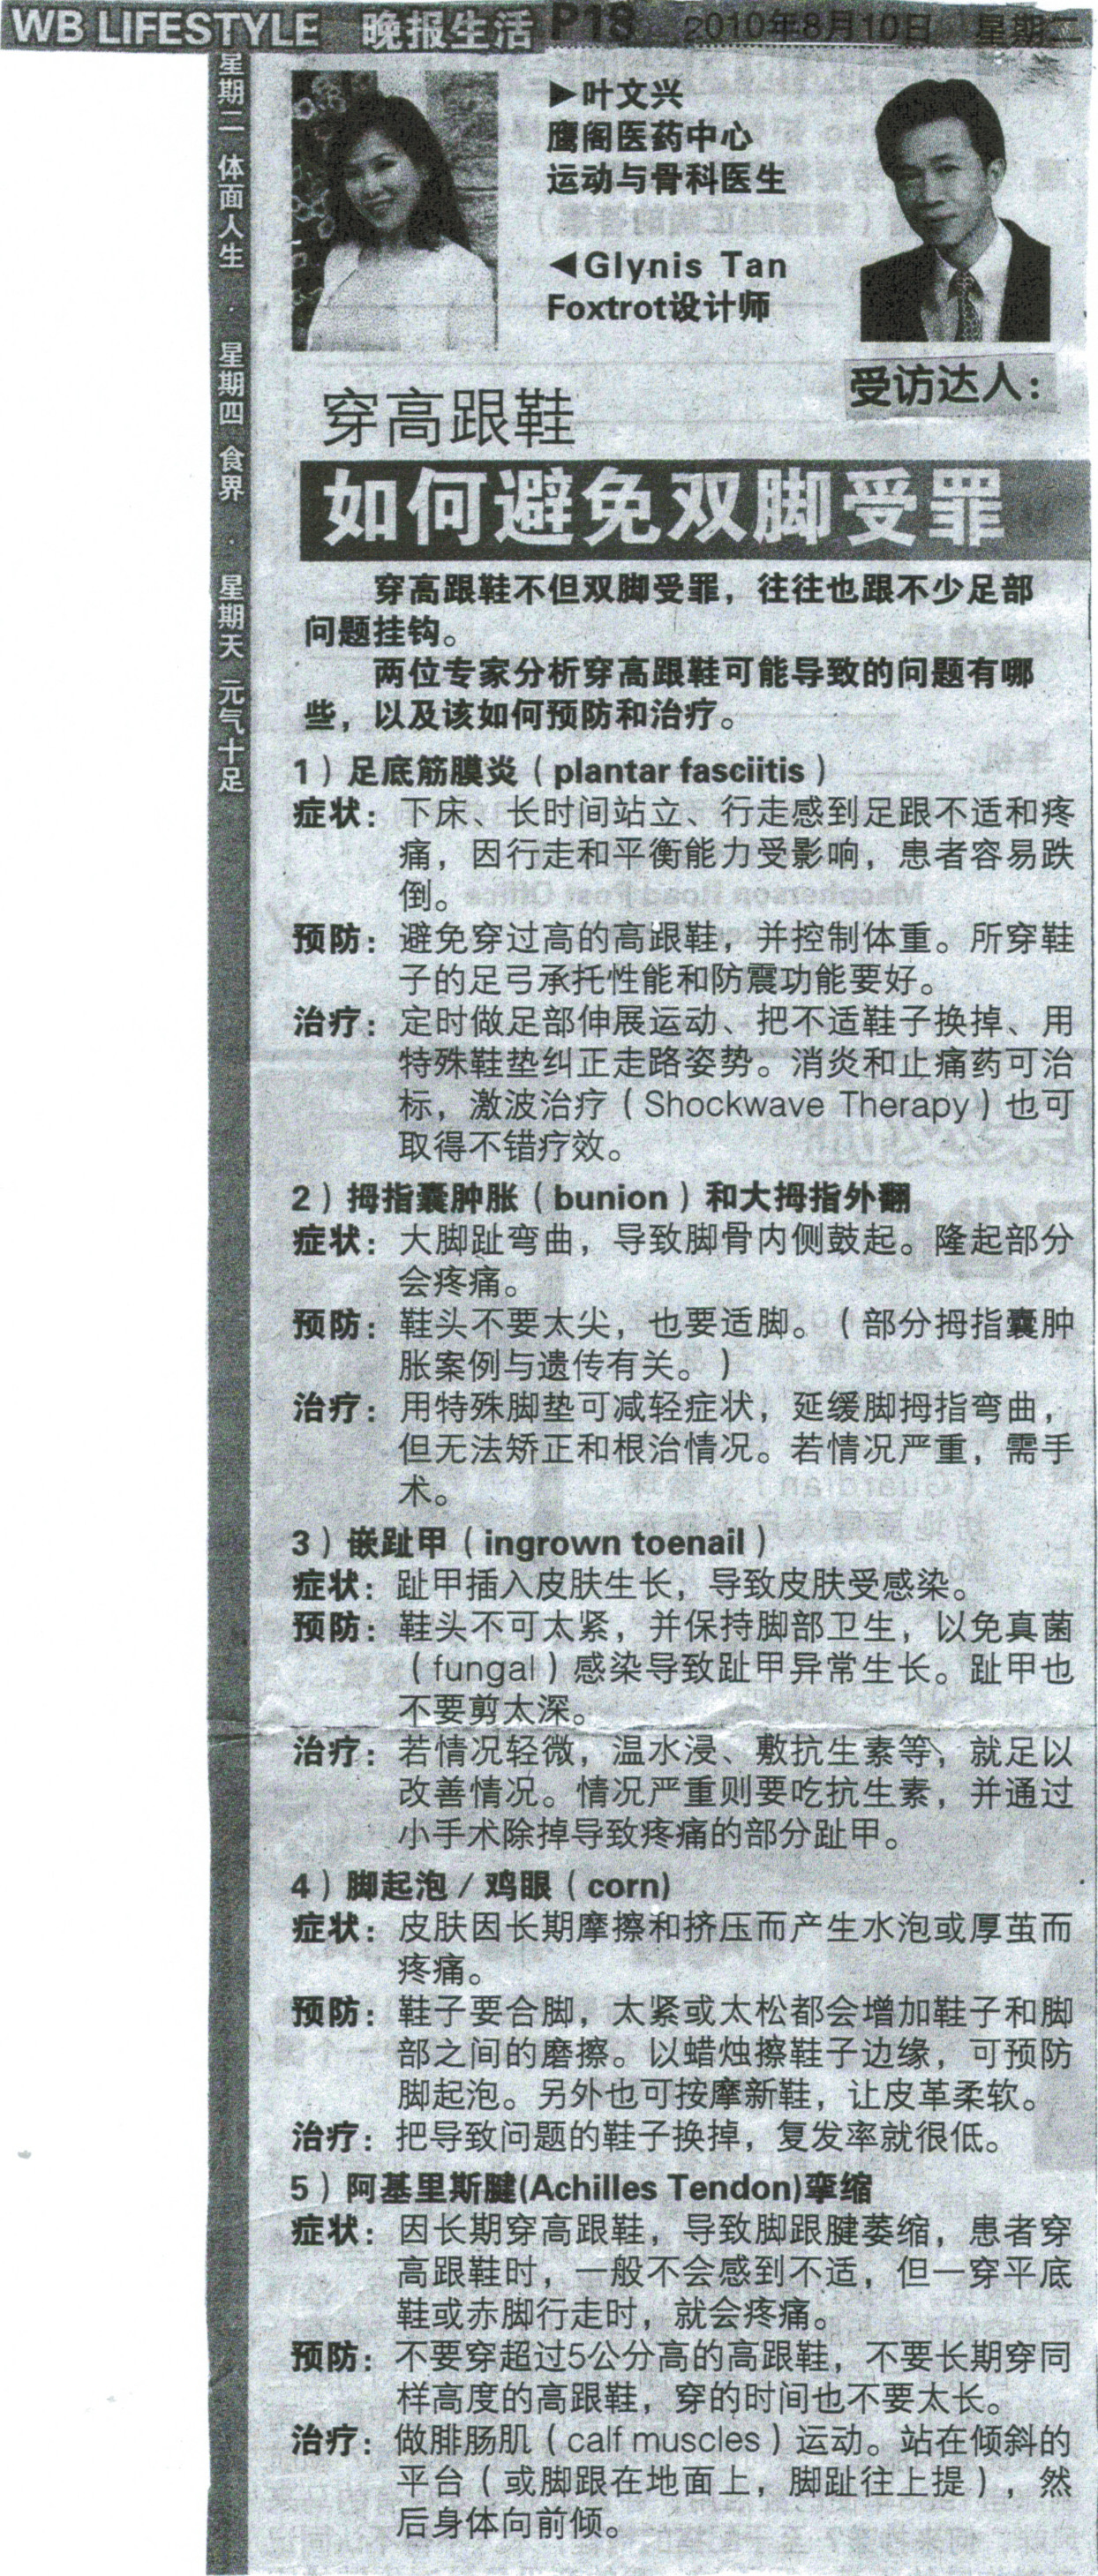 wanbao newspaper article